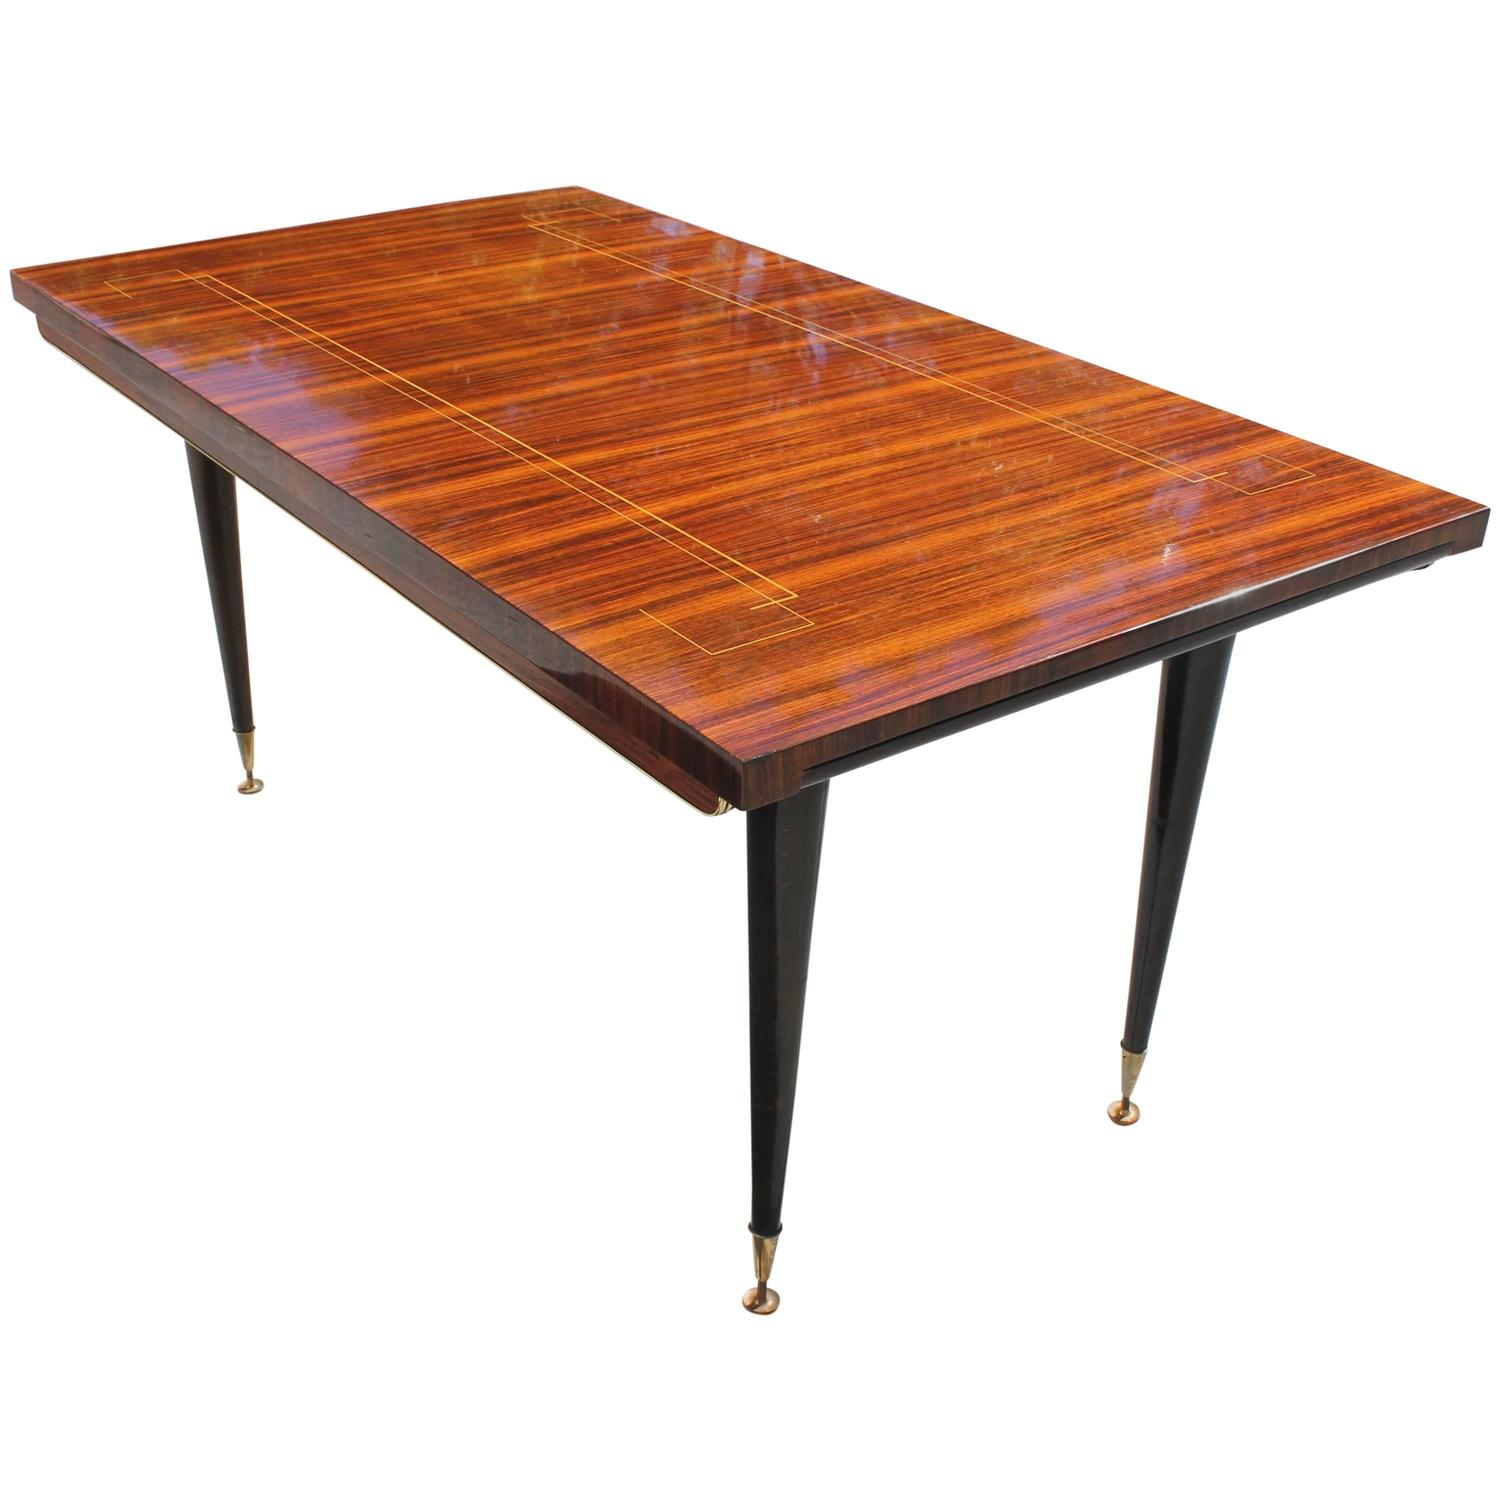 French art deco art moderne macassar ebony dining table circa 1940 for sale at 1stdibs - Art deco dining room table ...